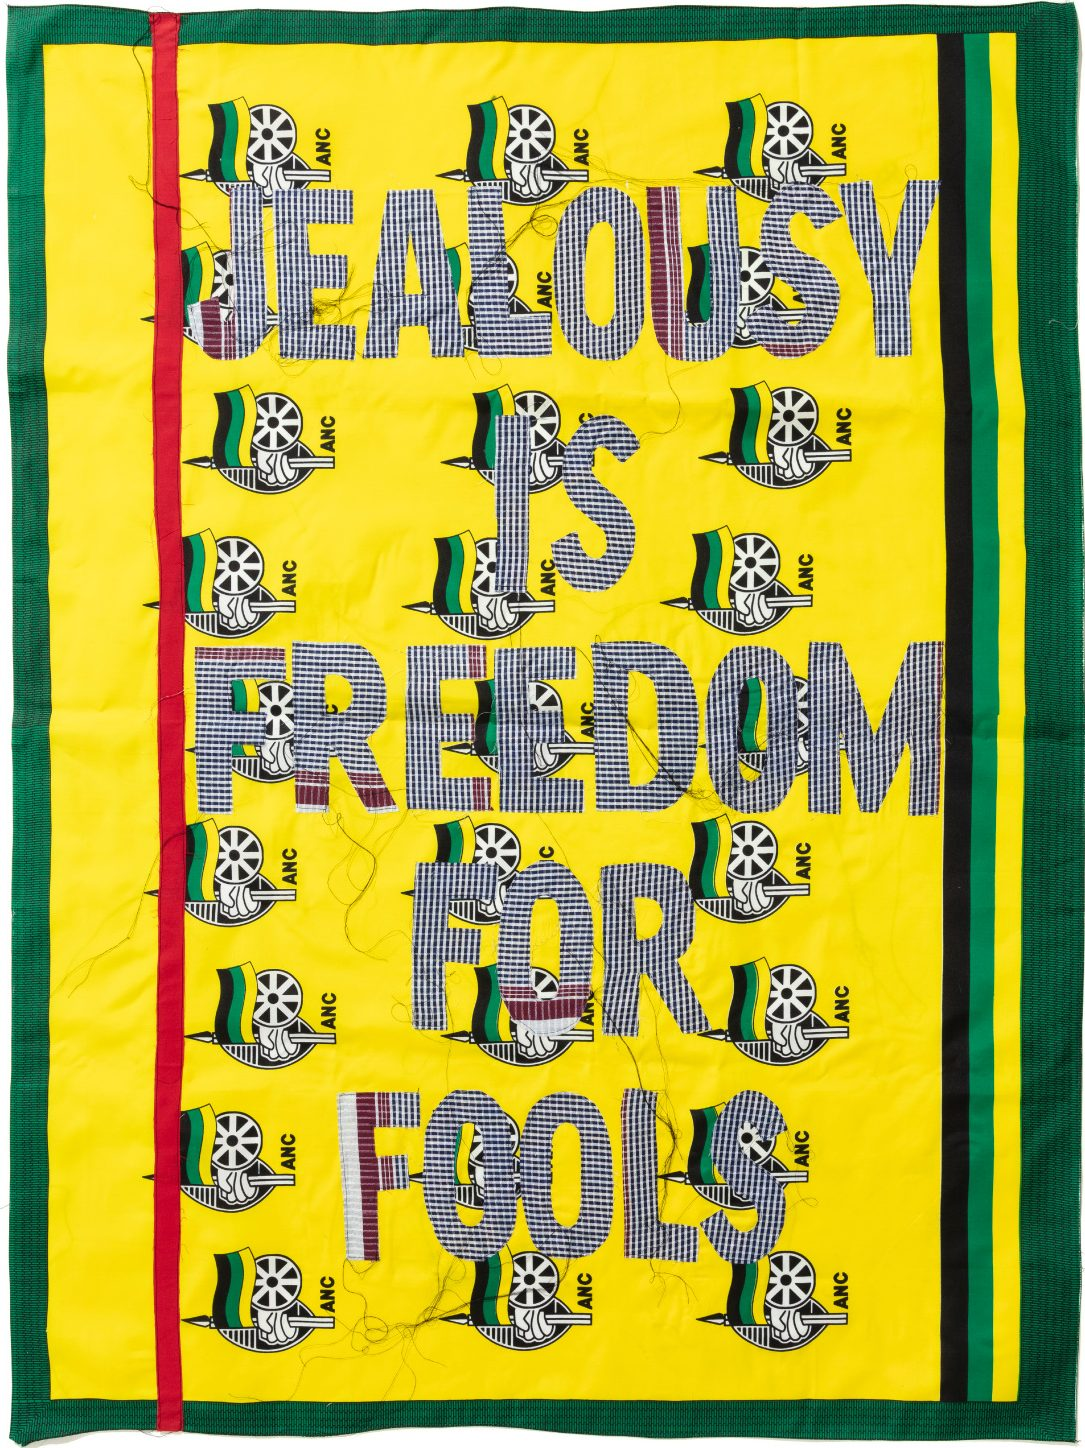 Jealousy is Freedom for Fools - Lawrence Lemaoana